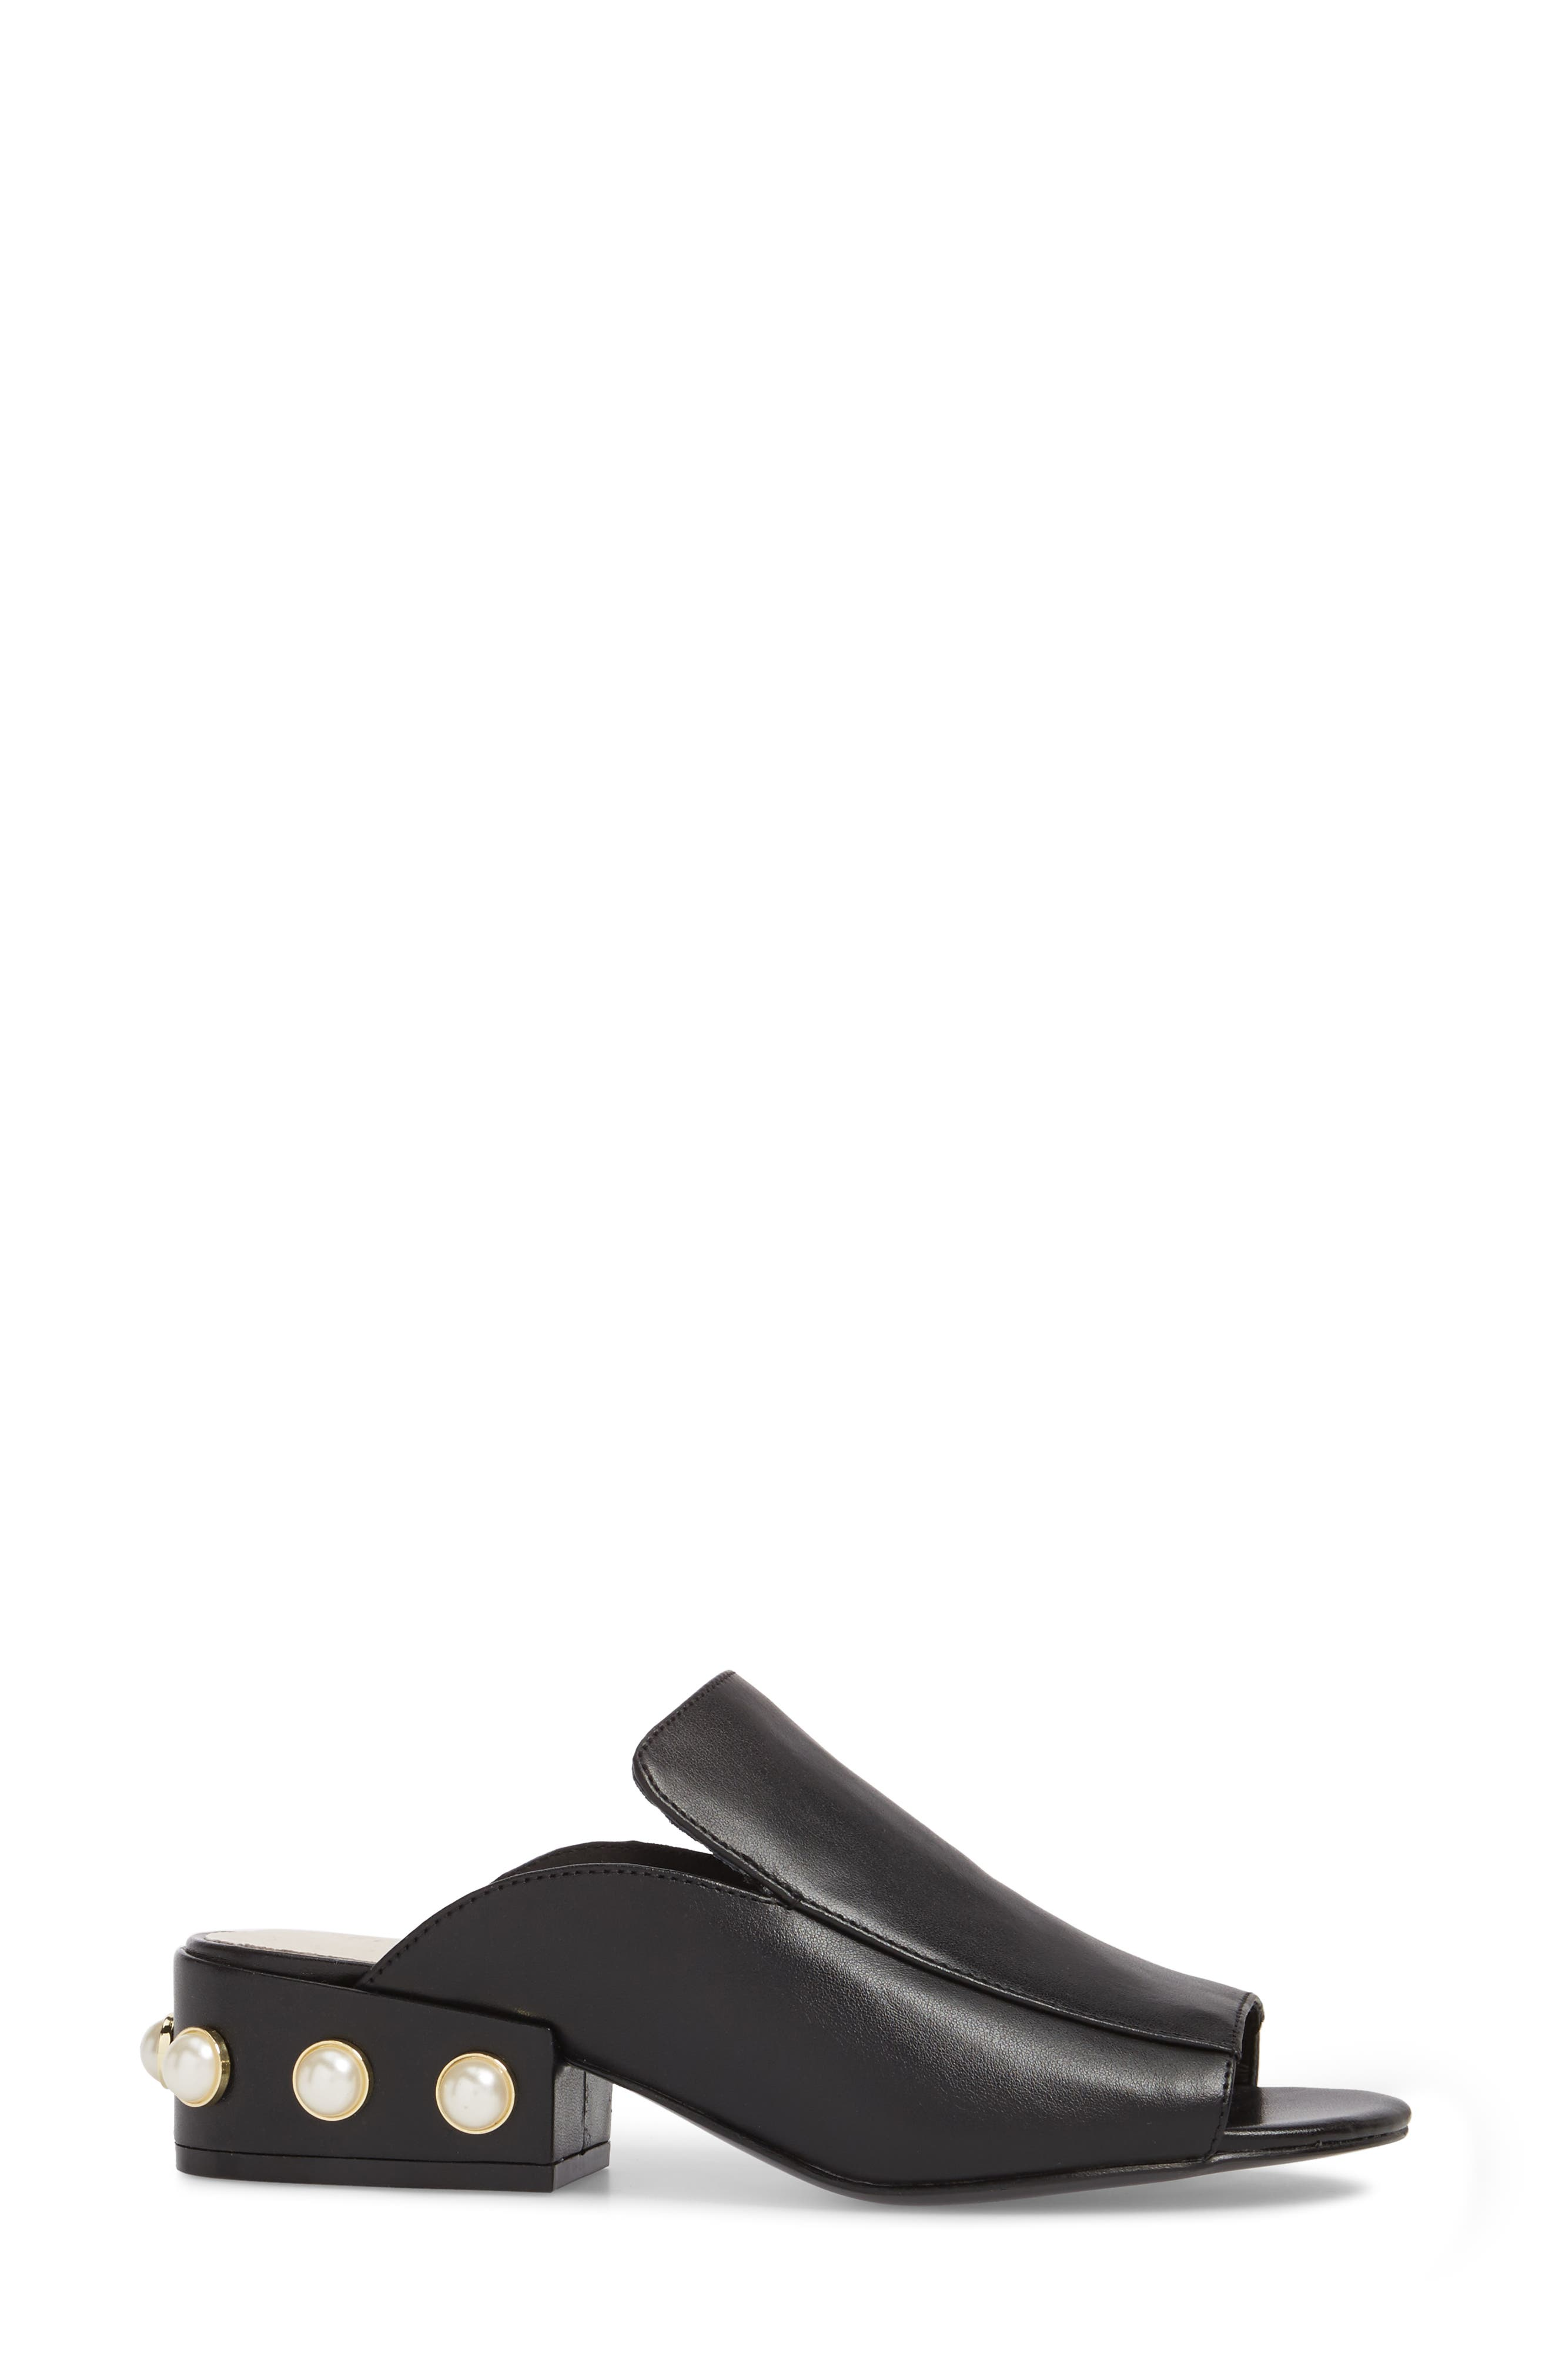 KENNETH COLE NEW YORK,                             Farley Embellished Mule,                             Alternate thumbnail 3, color,                             001